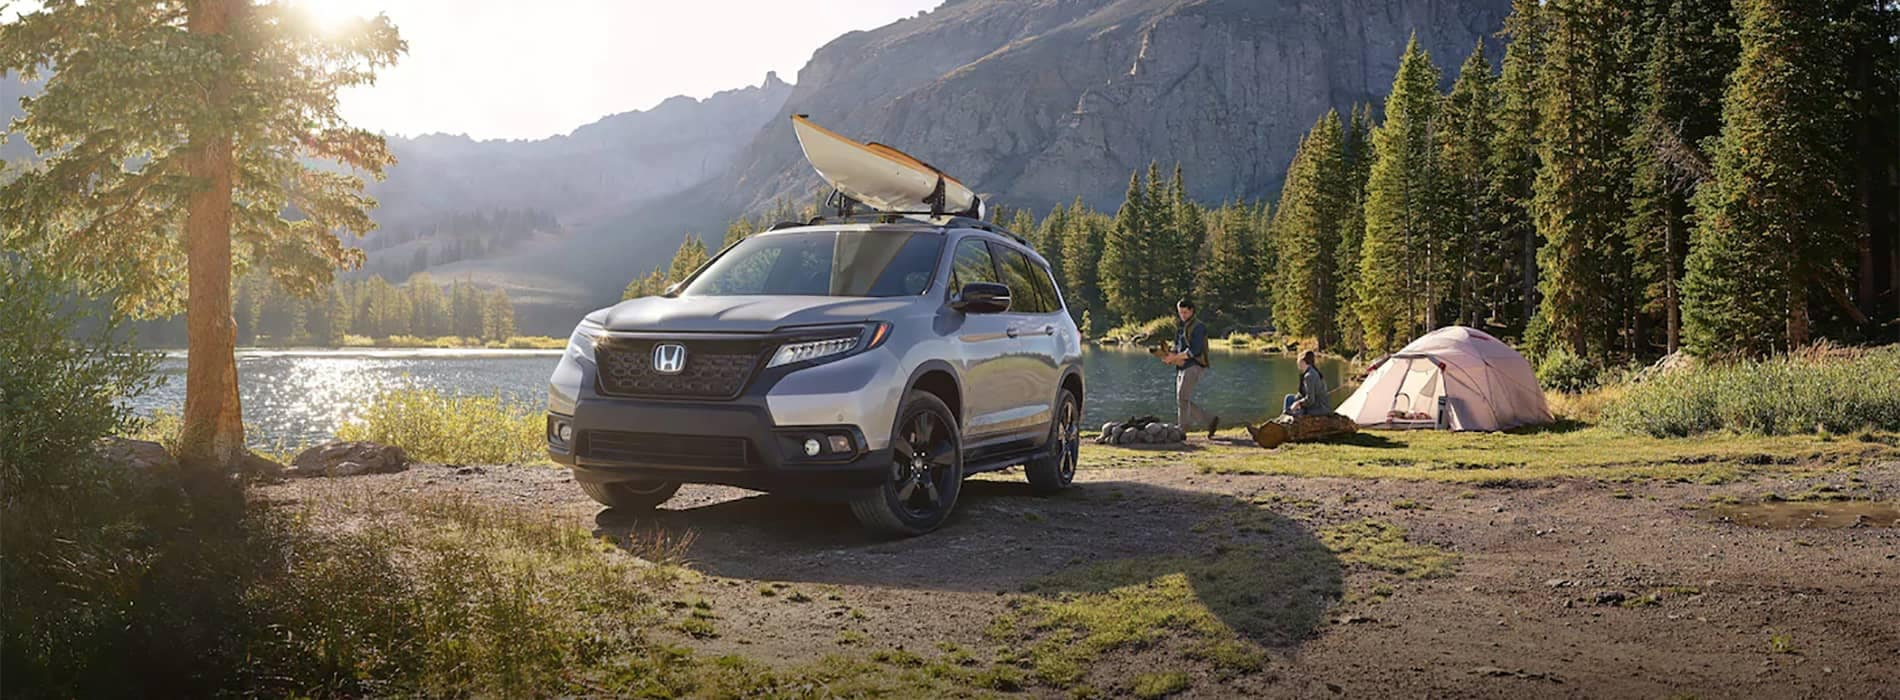 2019 Honda Passport Parked at Camping Site